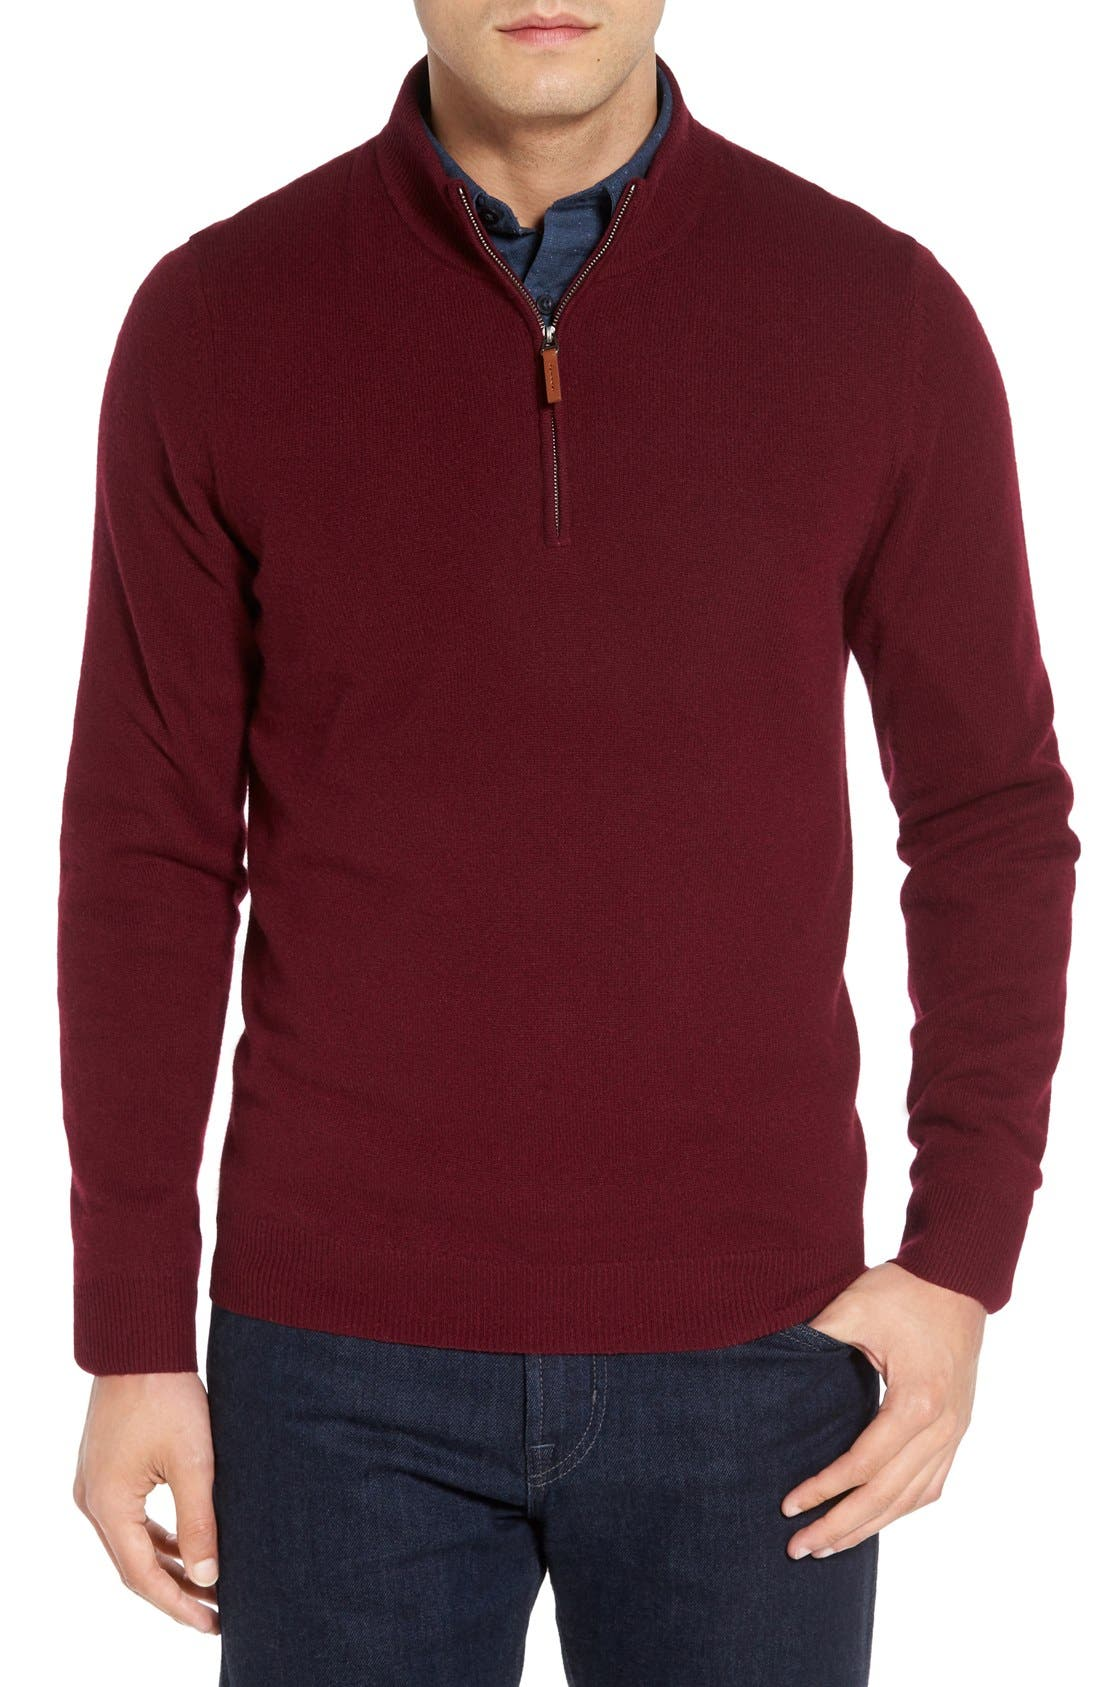 Main Image - Nordstrom Men's Shop Regular Fit Cashmere Quarter Zip Pullover (Regular & Tall)